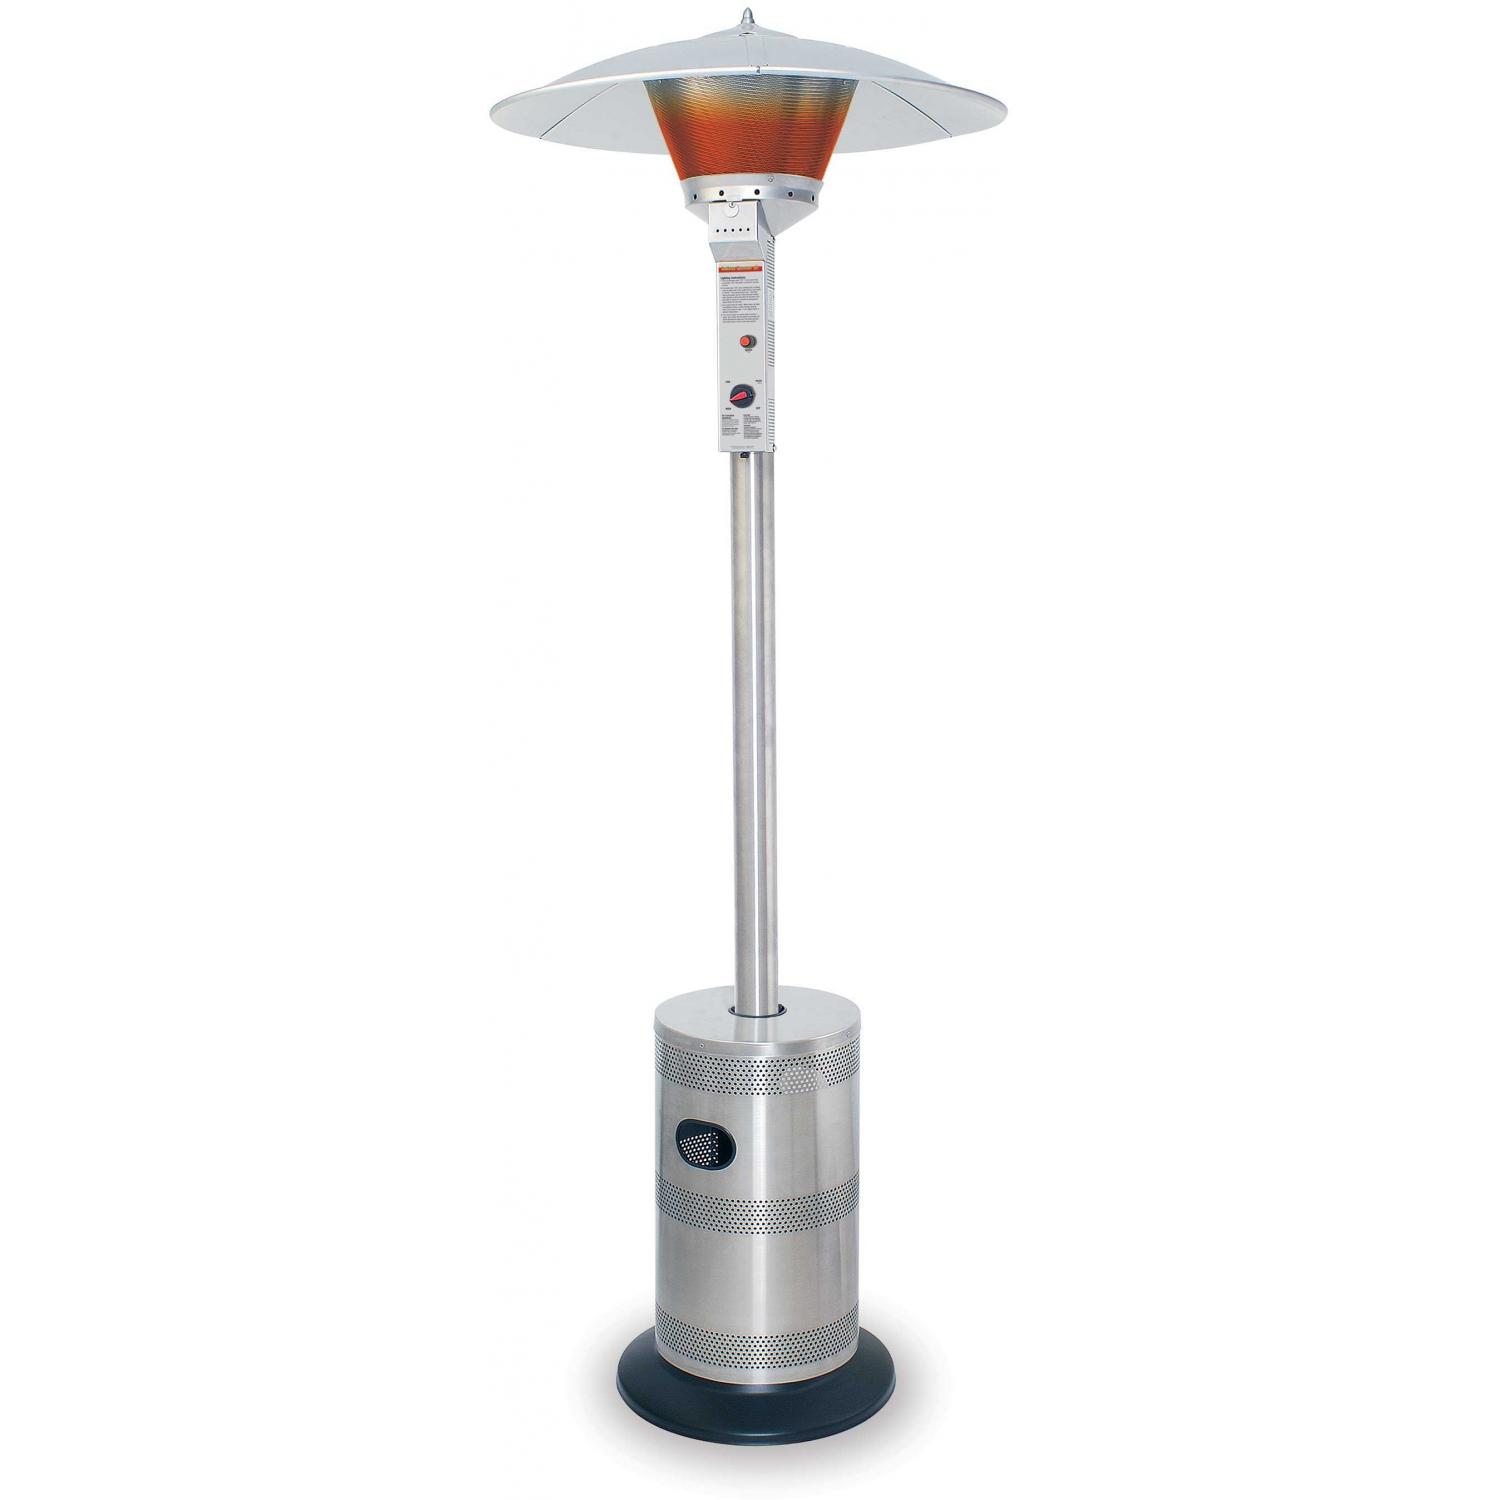 Endless Summer Patio Heaters Stainless Steel Commercial Propane Patio Heater